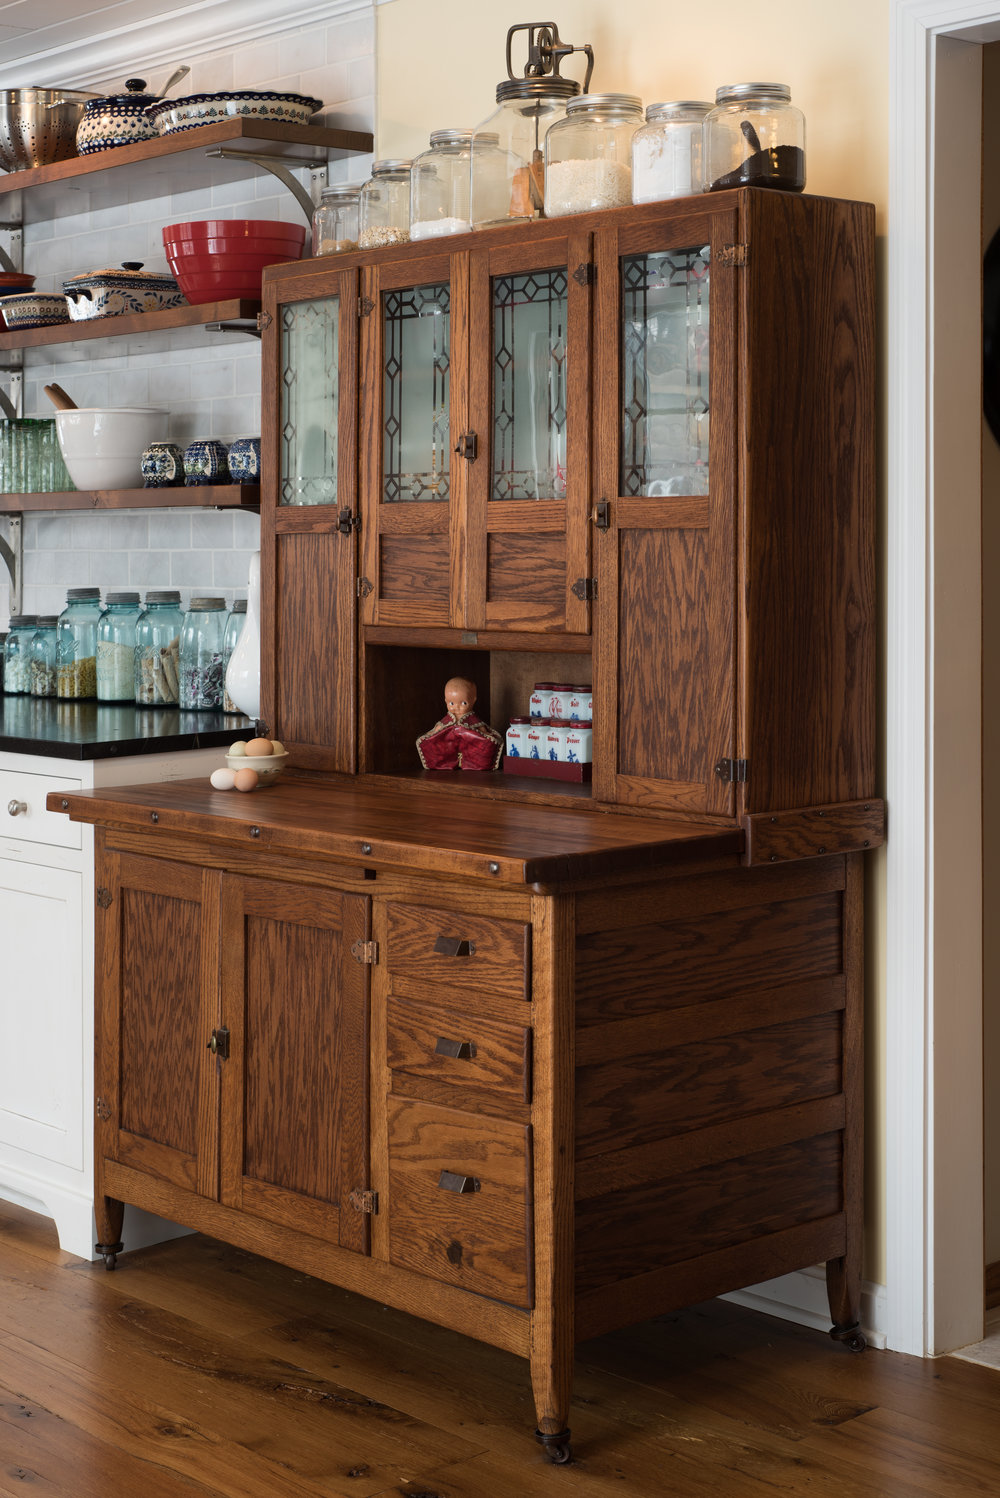 quality kitchen cabinets today's quality kitchen cabinets kitchen cabinets amish oak showcase